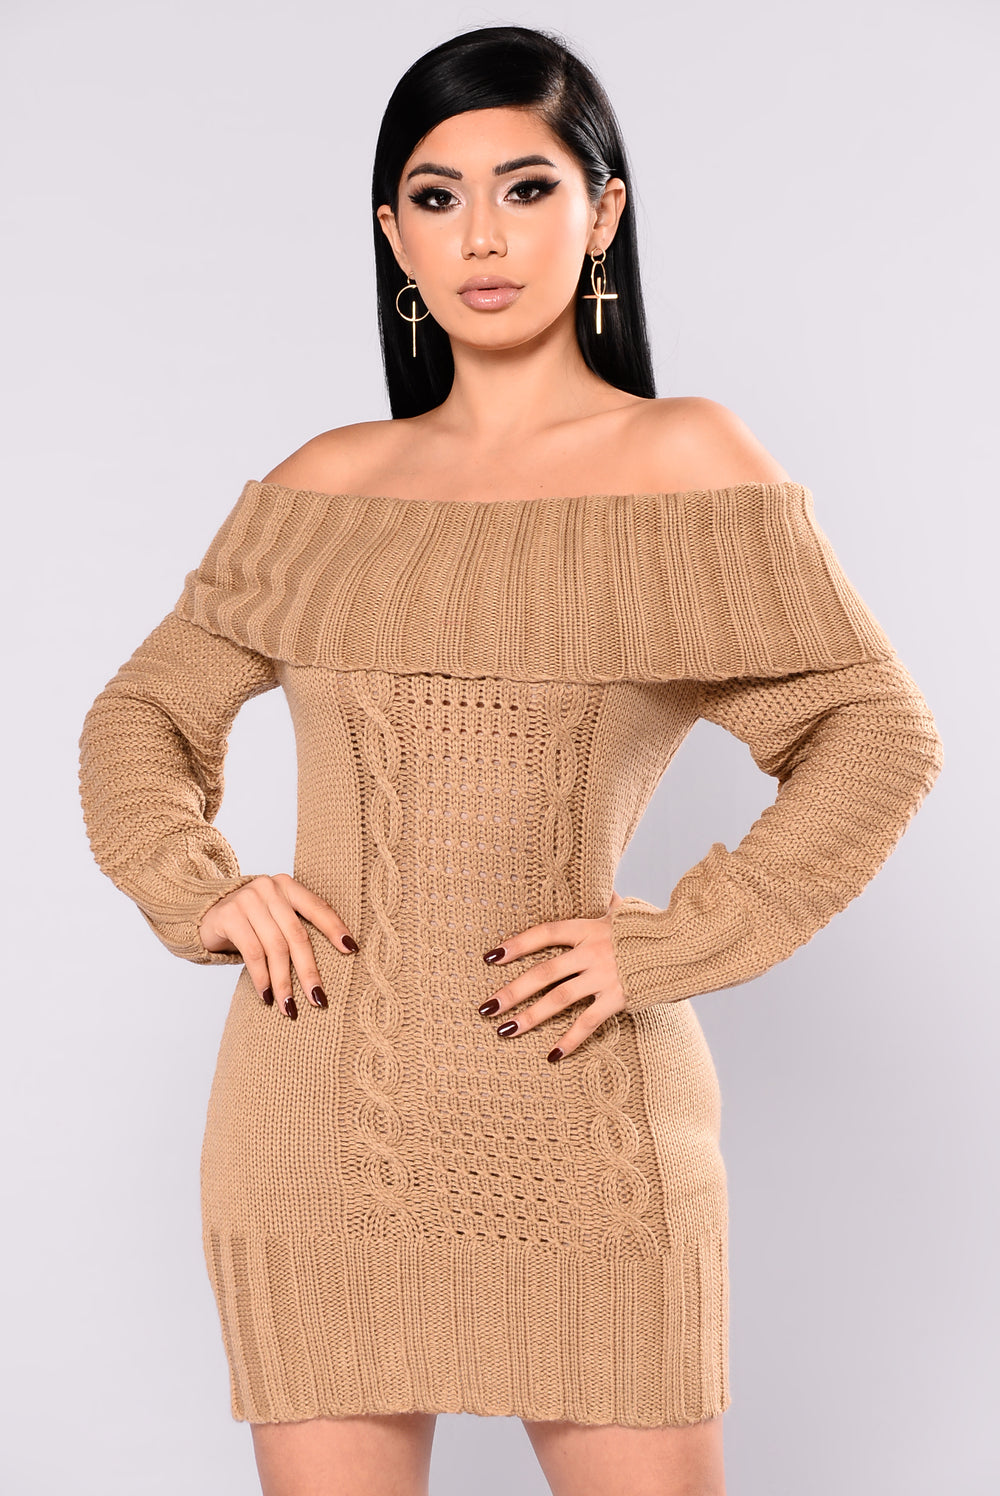 Jezebel Sweater - Toffee